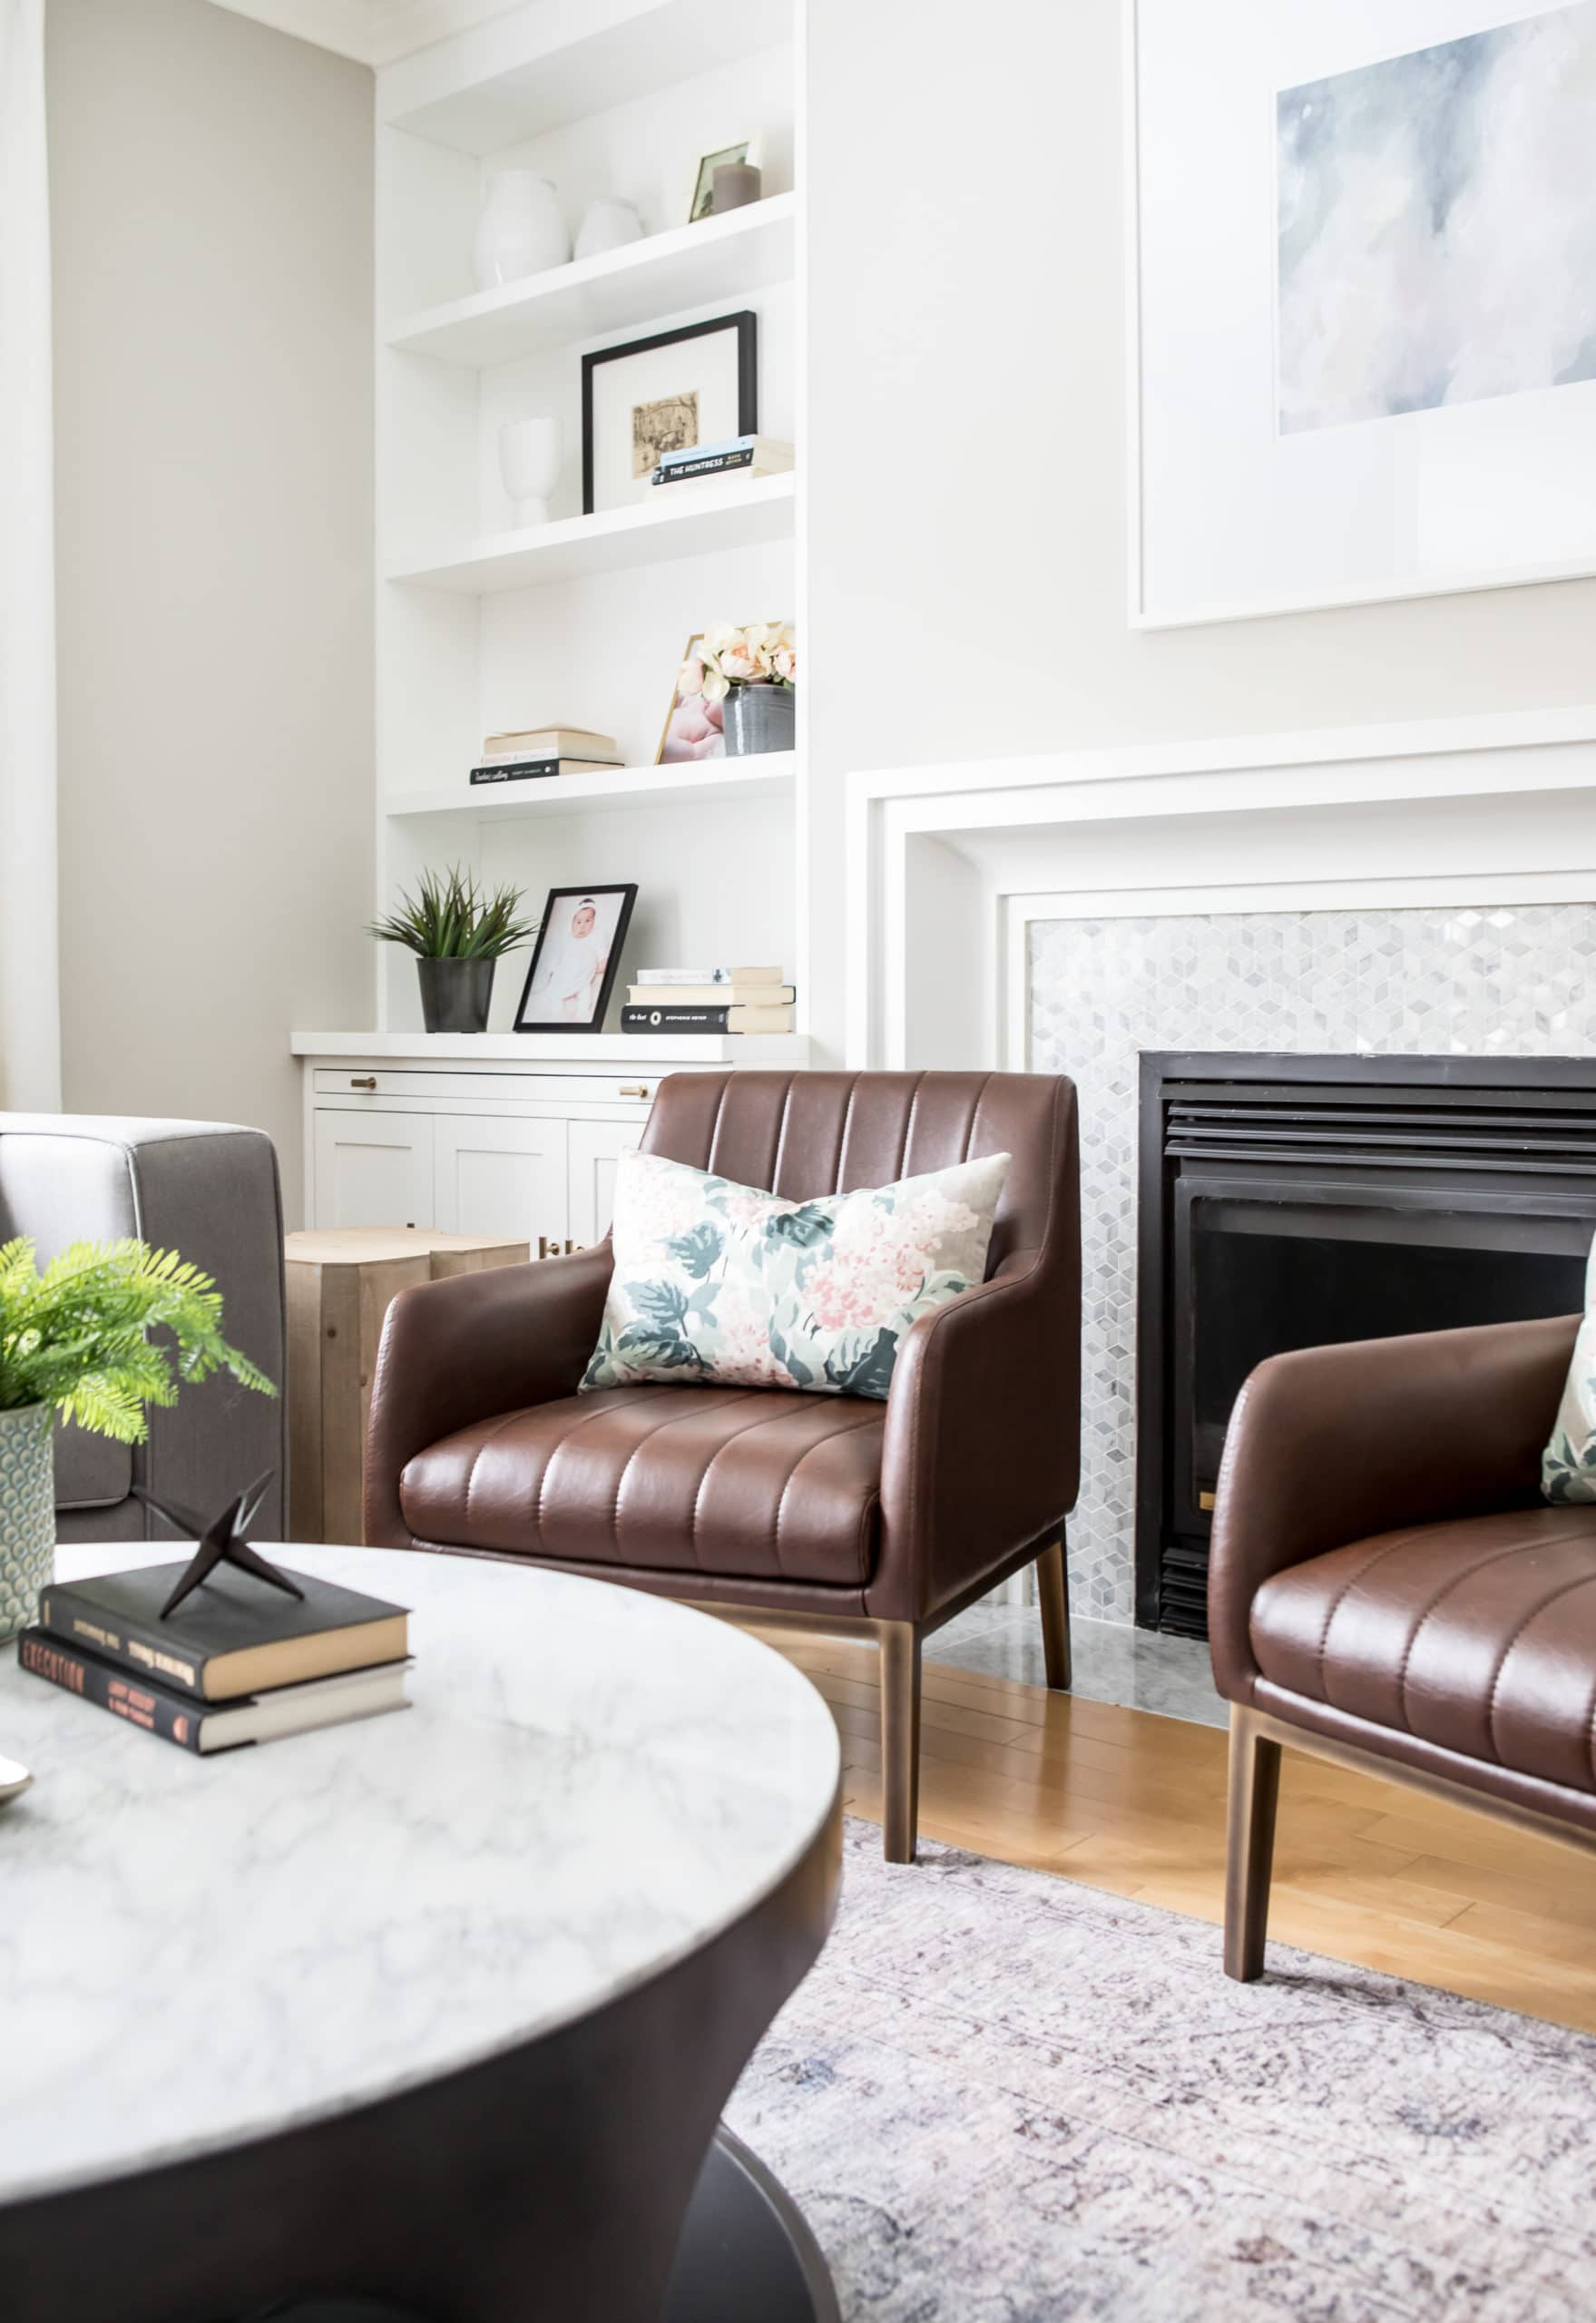 Modern living room with a focus on a brown chair